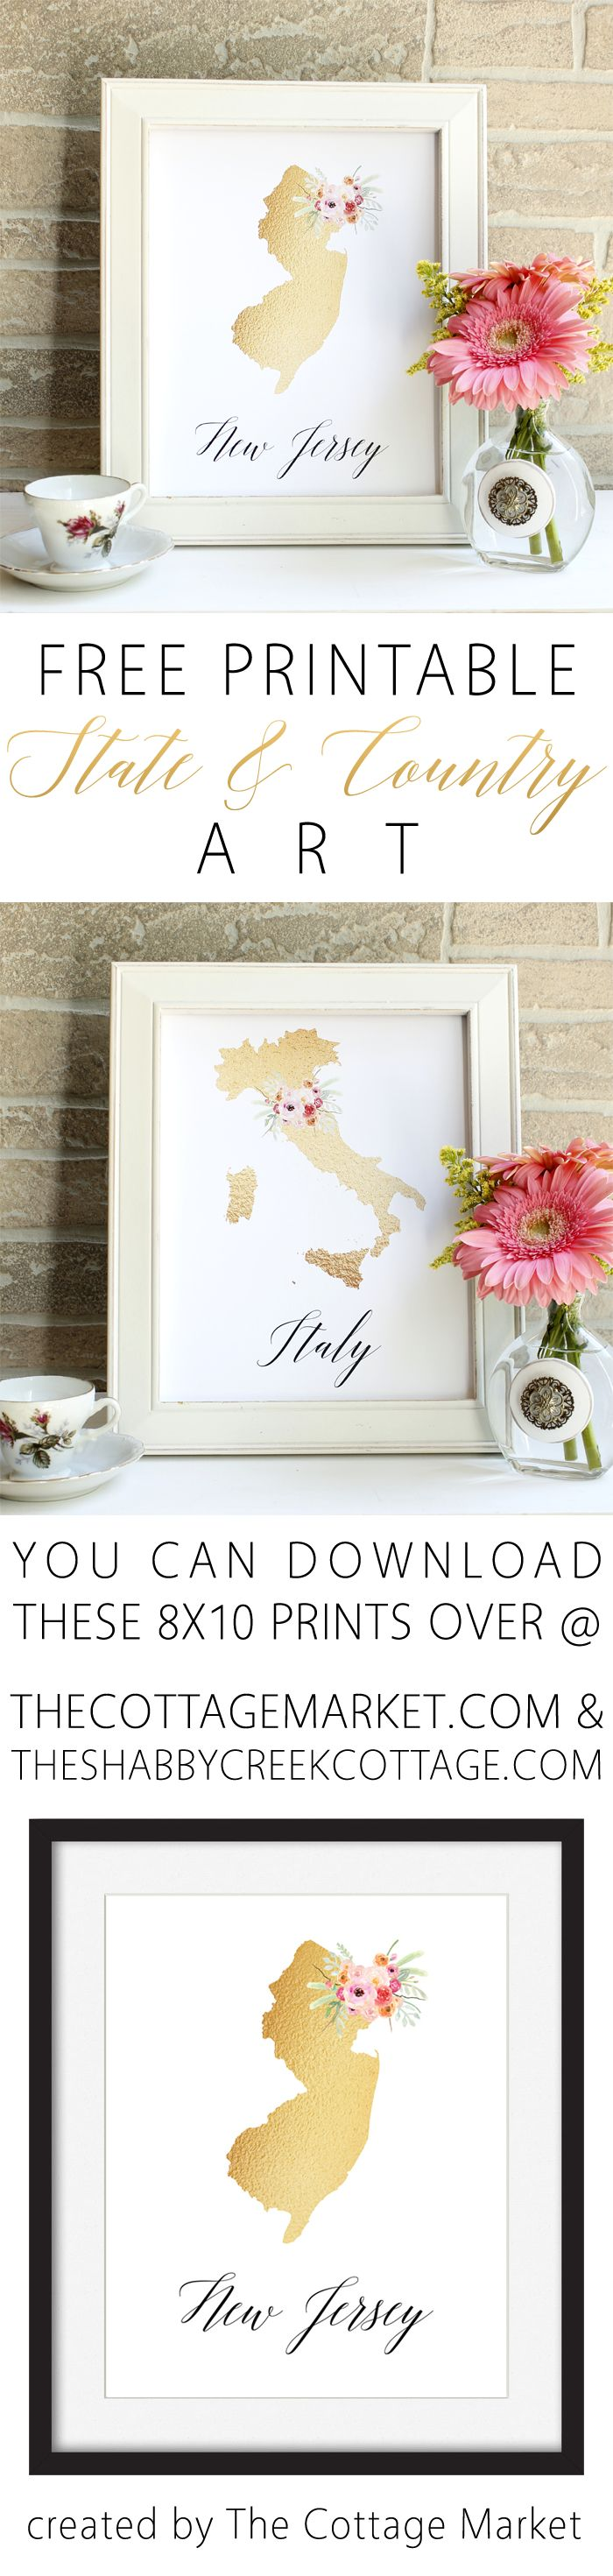 Free printable state art for most states and countries - beautiful gold foil look, and 100% free for personal use!